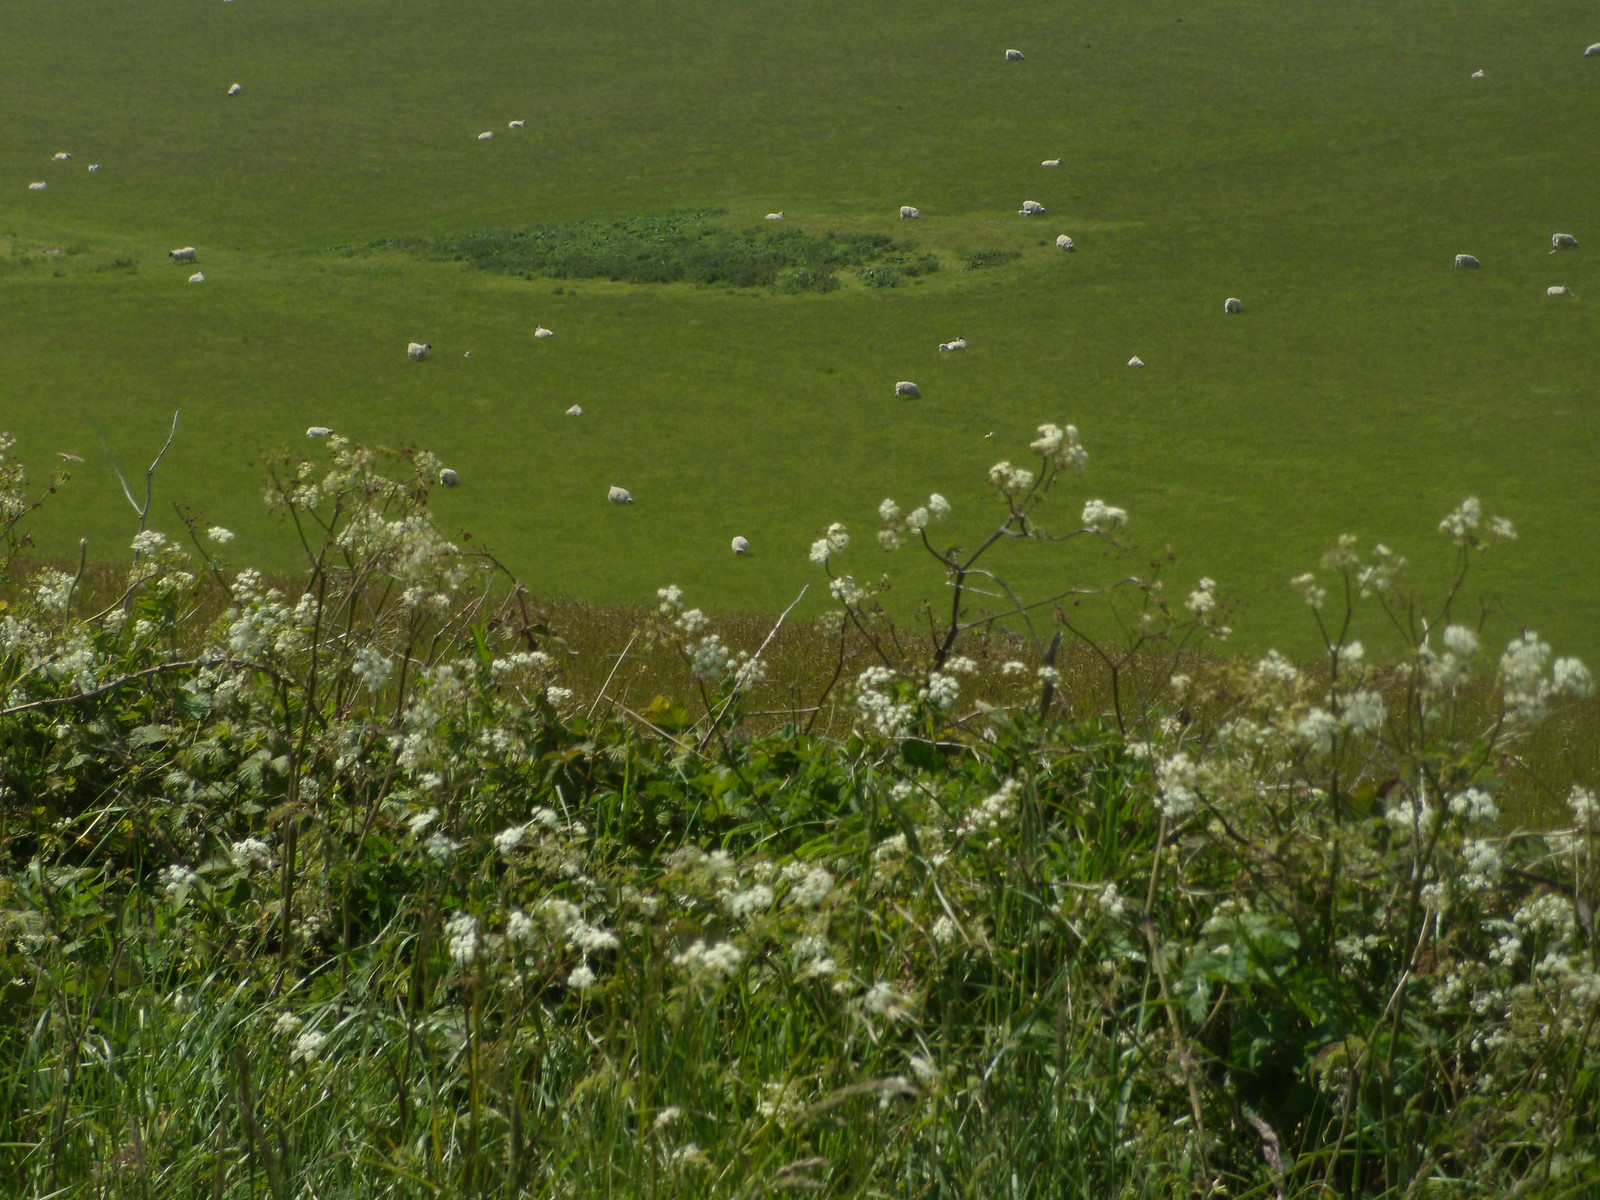 Cow parsley'n'sheep The sheep have become as one with the cow parsley. Southease to Rottingdean